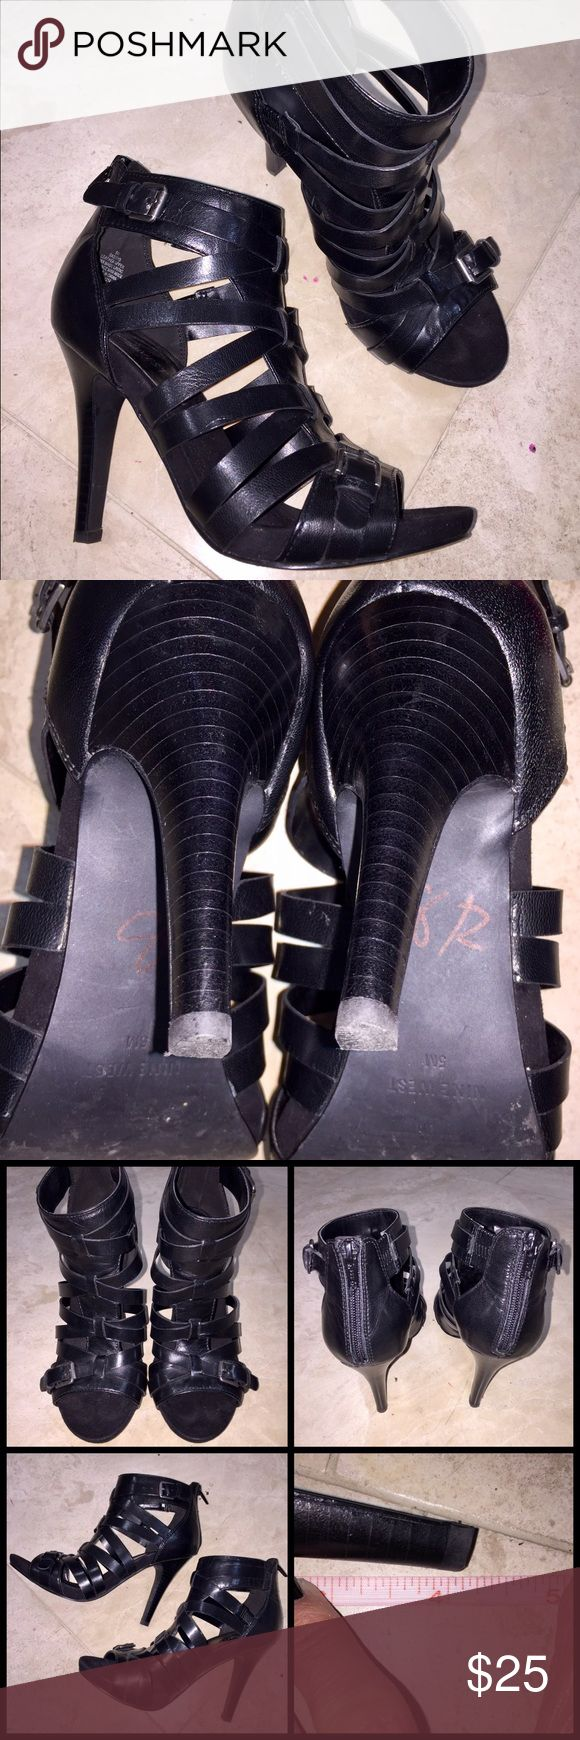 "REG3️⃣0️⃣Nine West Gladiator Heels Nine West Gladiator Heels in size 5 come in LIKE NEW condition. Only wore twice for a Halloween costume! Super sexy! 3.5"" across the top and a 4"" heel. My prices fluctuate from time to time. Catch items when the prices are low!❤️ Nine West Shoes Heels"